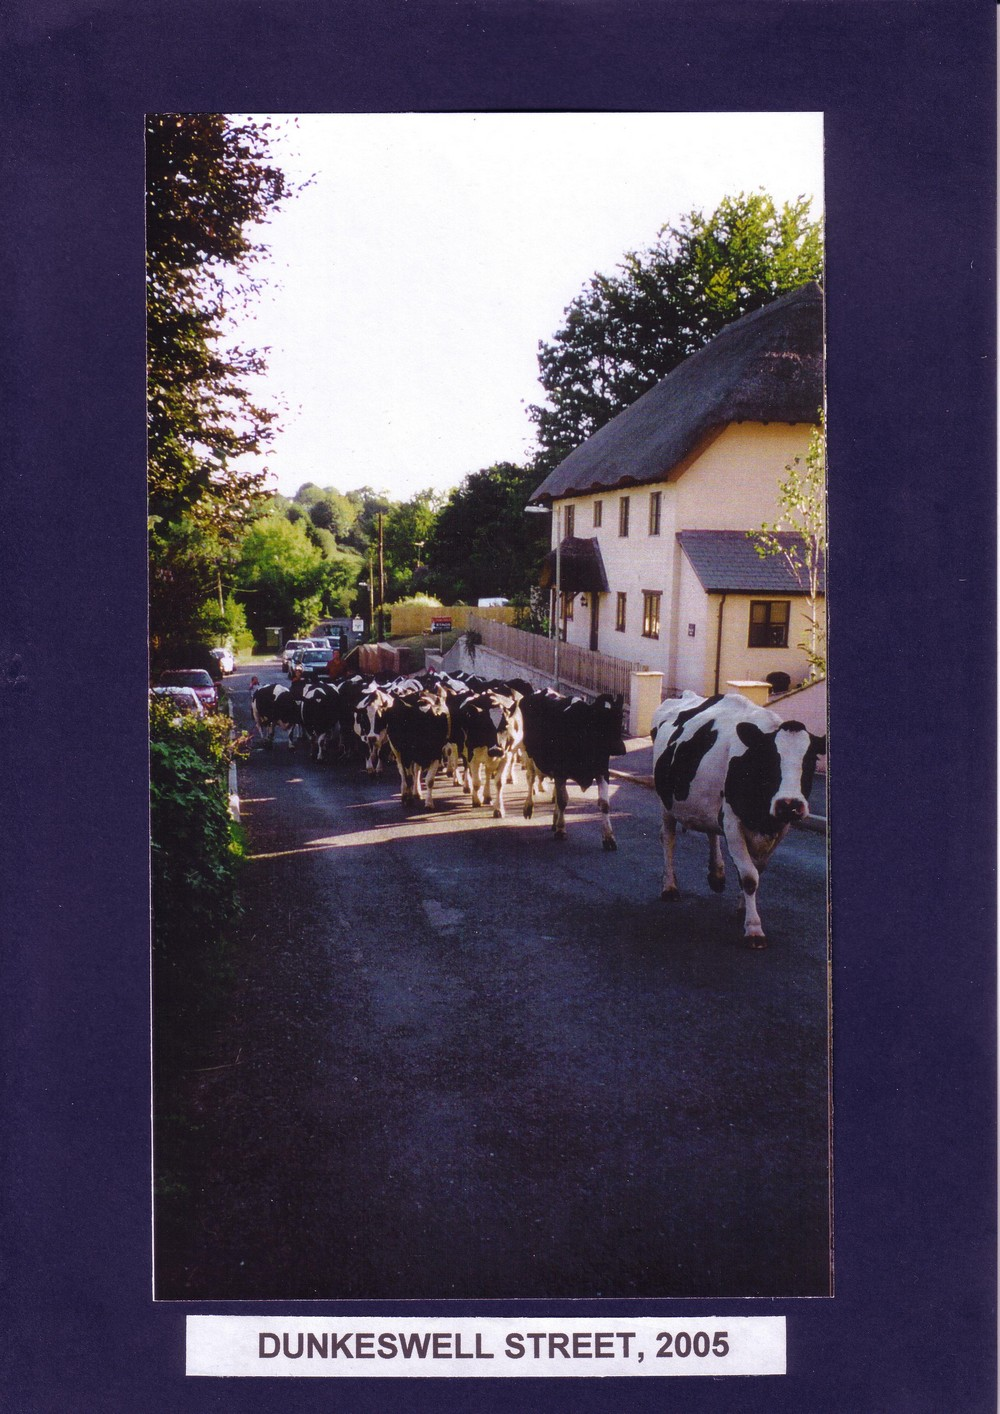 018 Dunkeswell Street with cows  2005